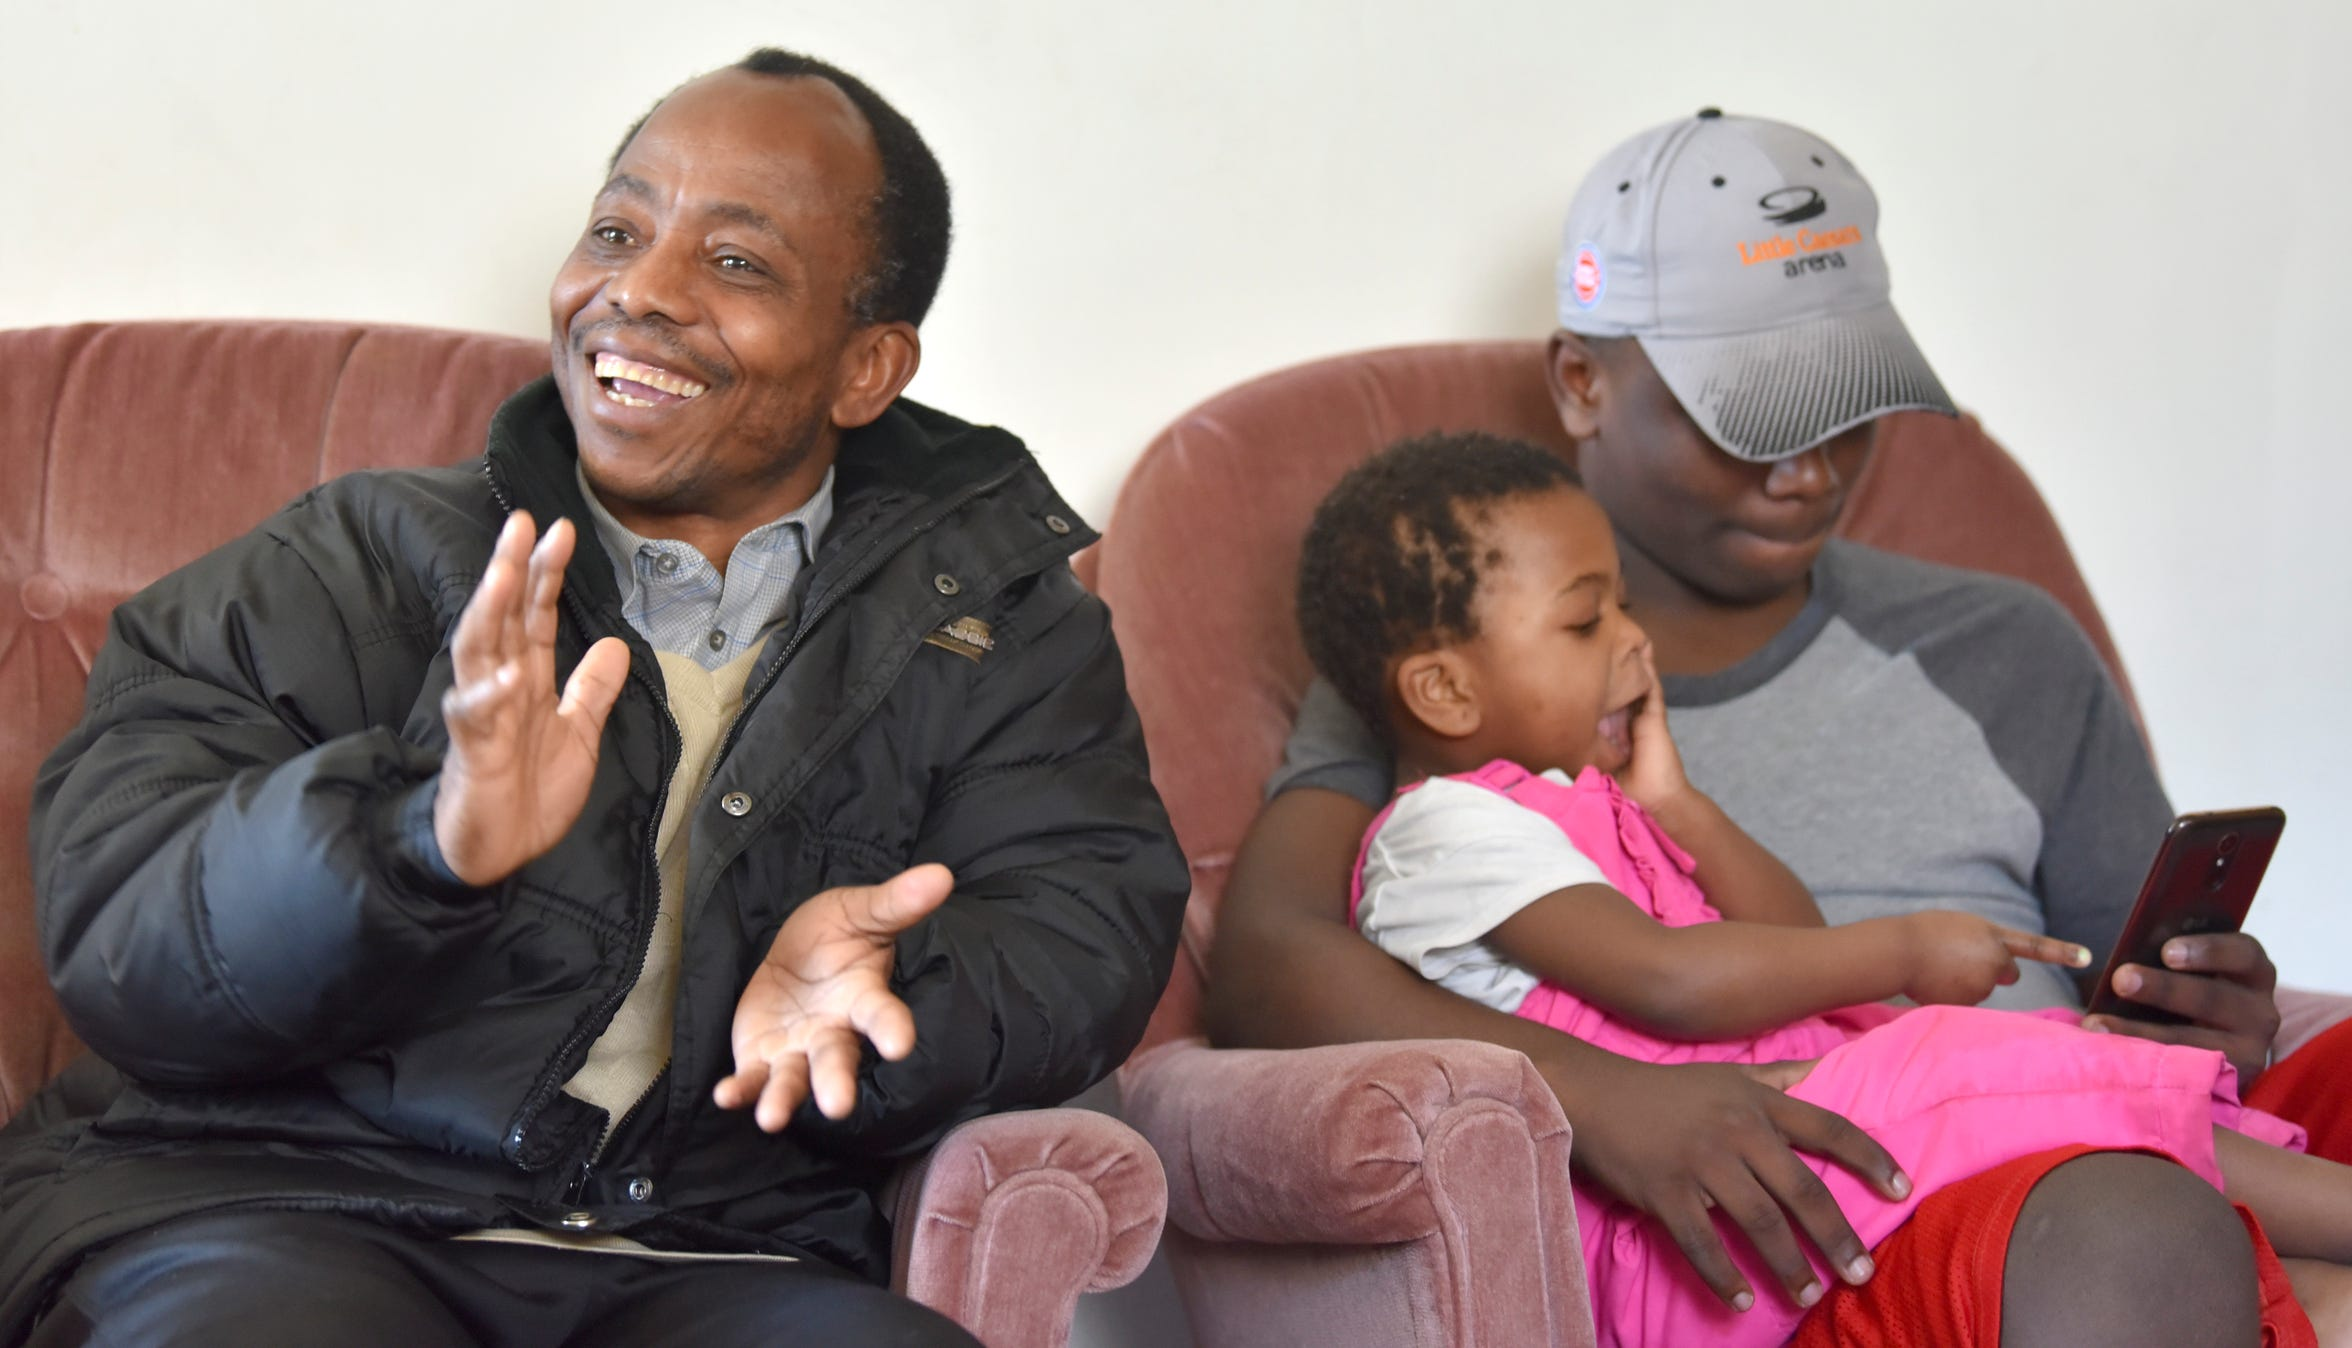 Riobert, left, talking through an interpreter, describes the differences of the U.S. from the Dem. Rep. of Congo as his son, Msimbi, and granddaughter, Neewa, look at the 16-year-old's cell phone.